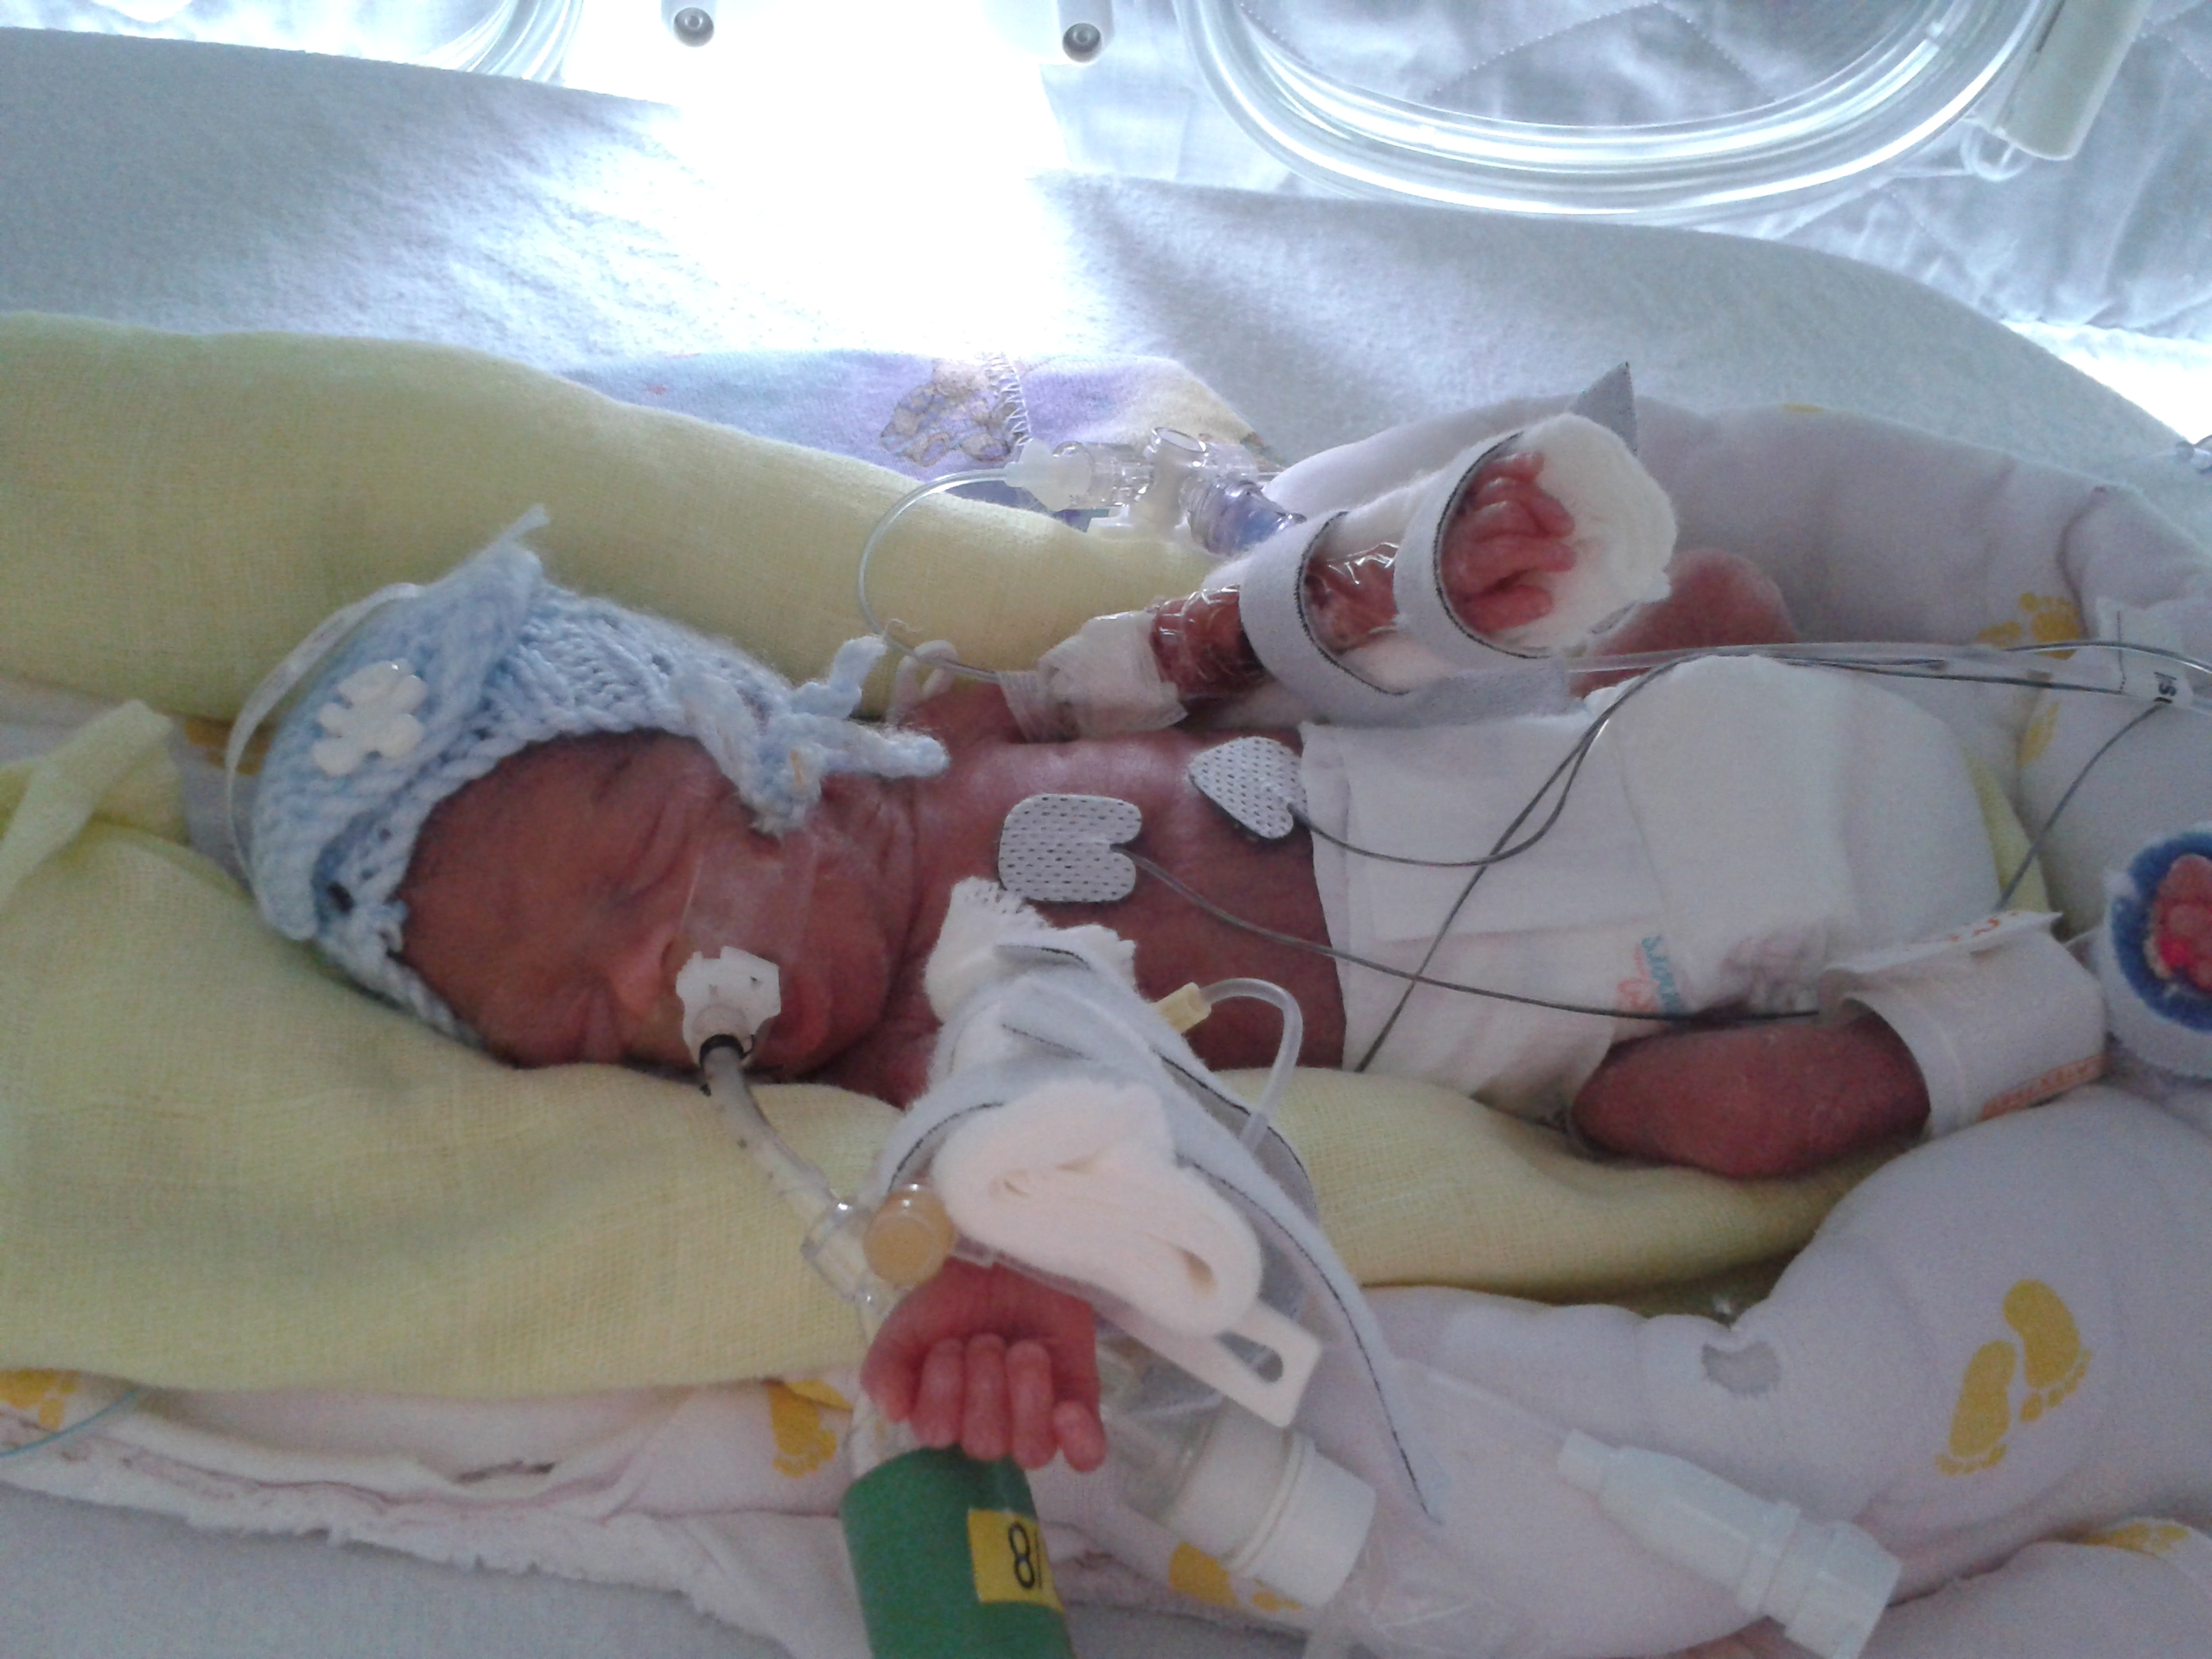 What To Put In Room With Premature Baby